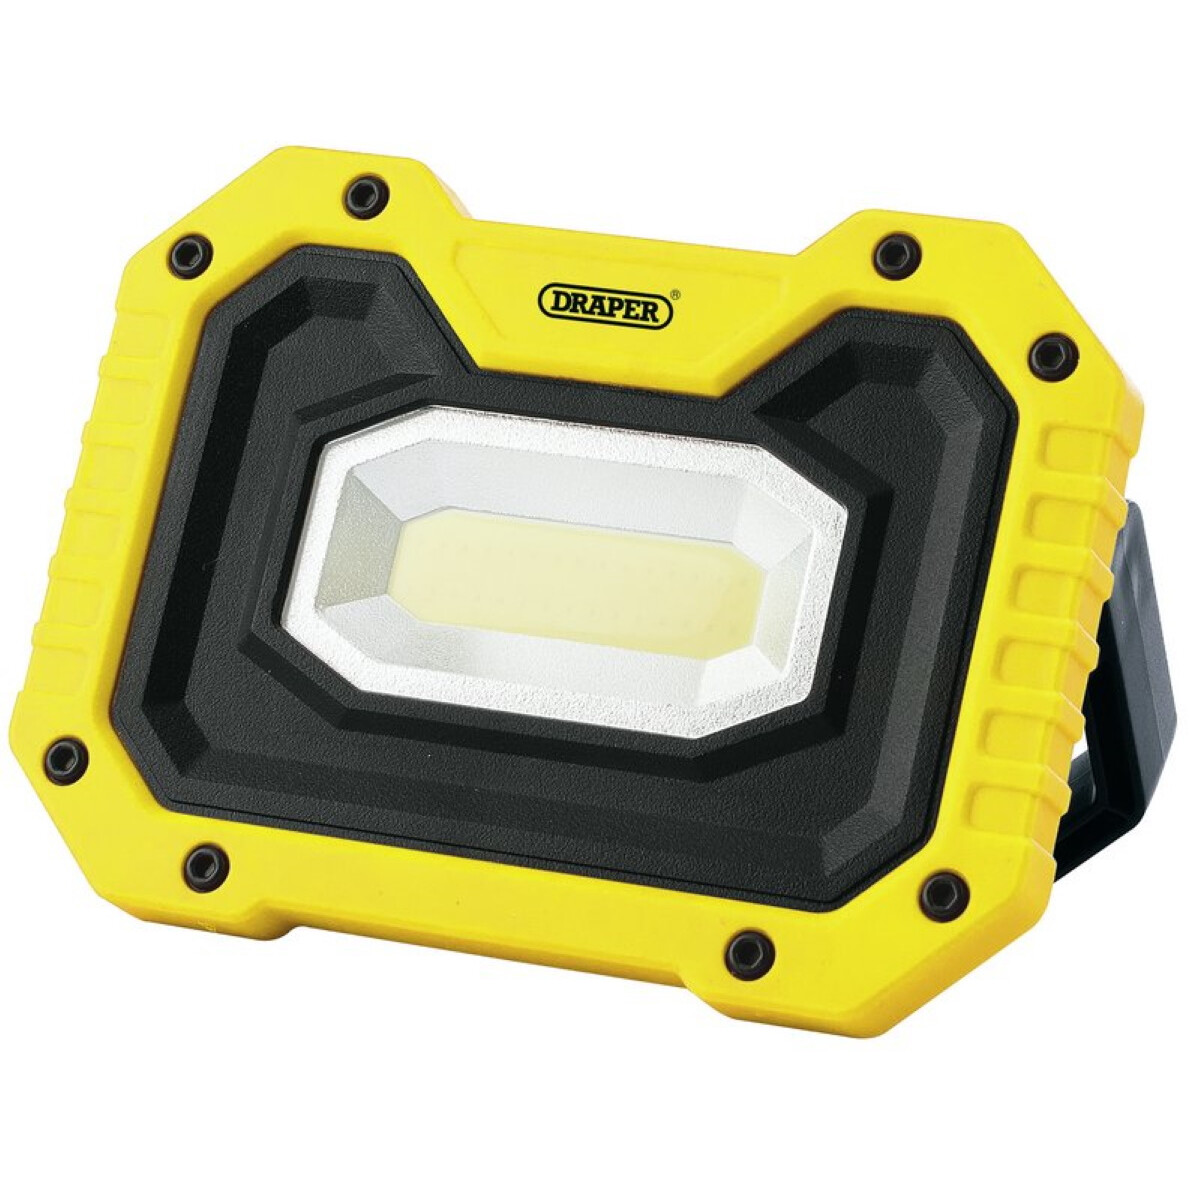 Draper 90004 RFL/500/Y Rechargeable Worklight with Wireless Speaker -  Yellow